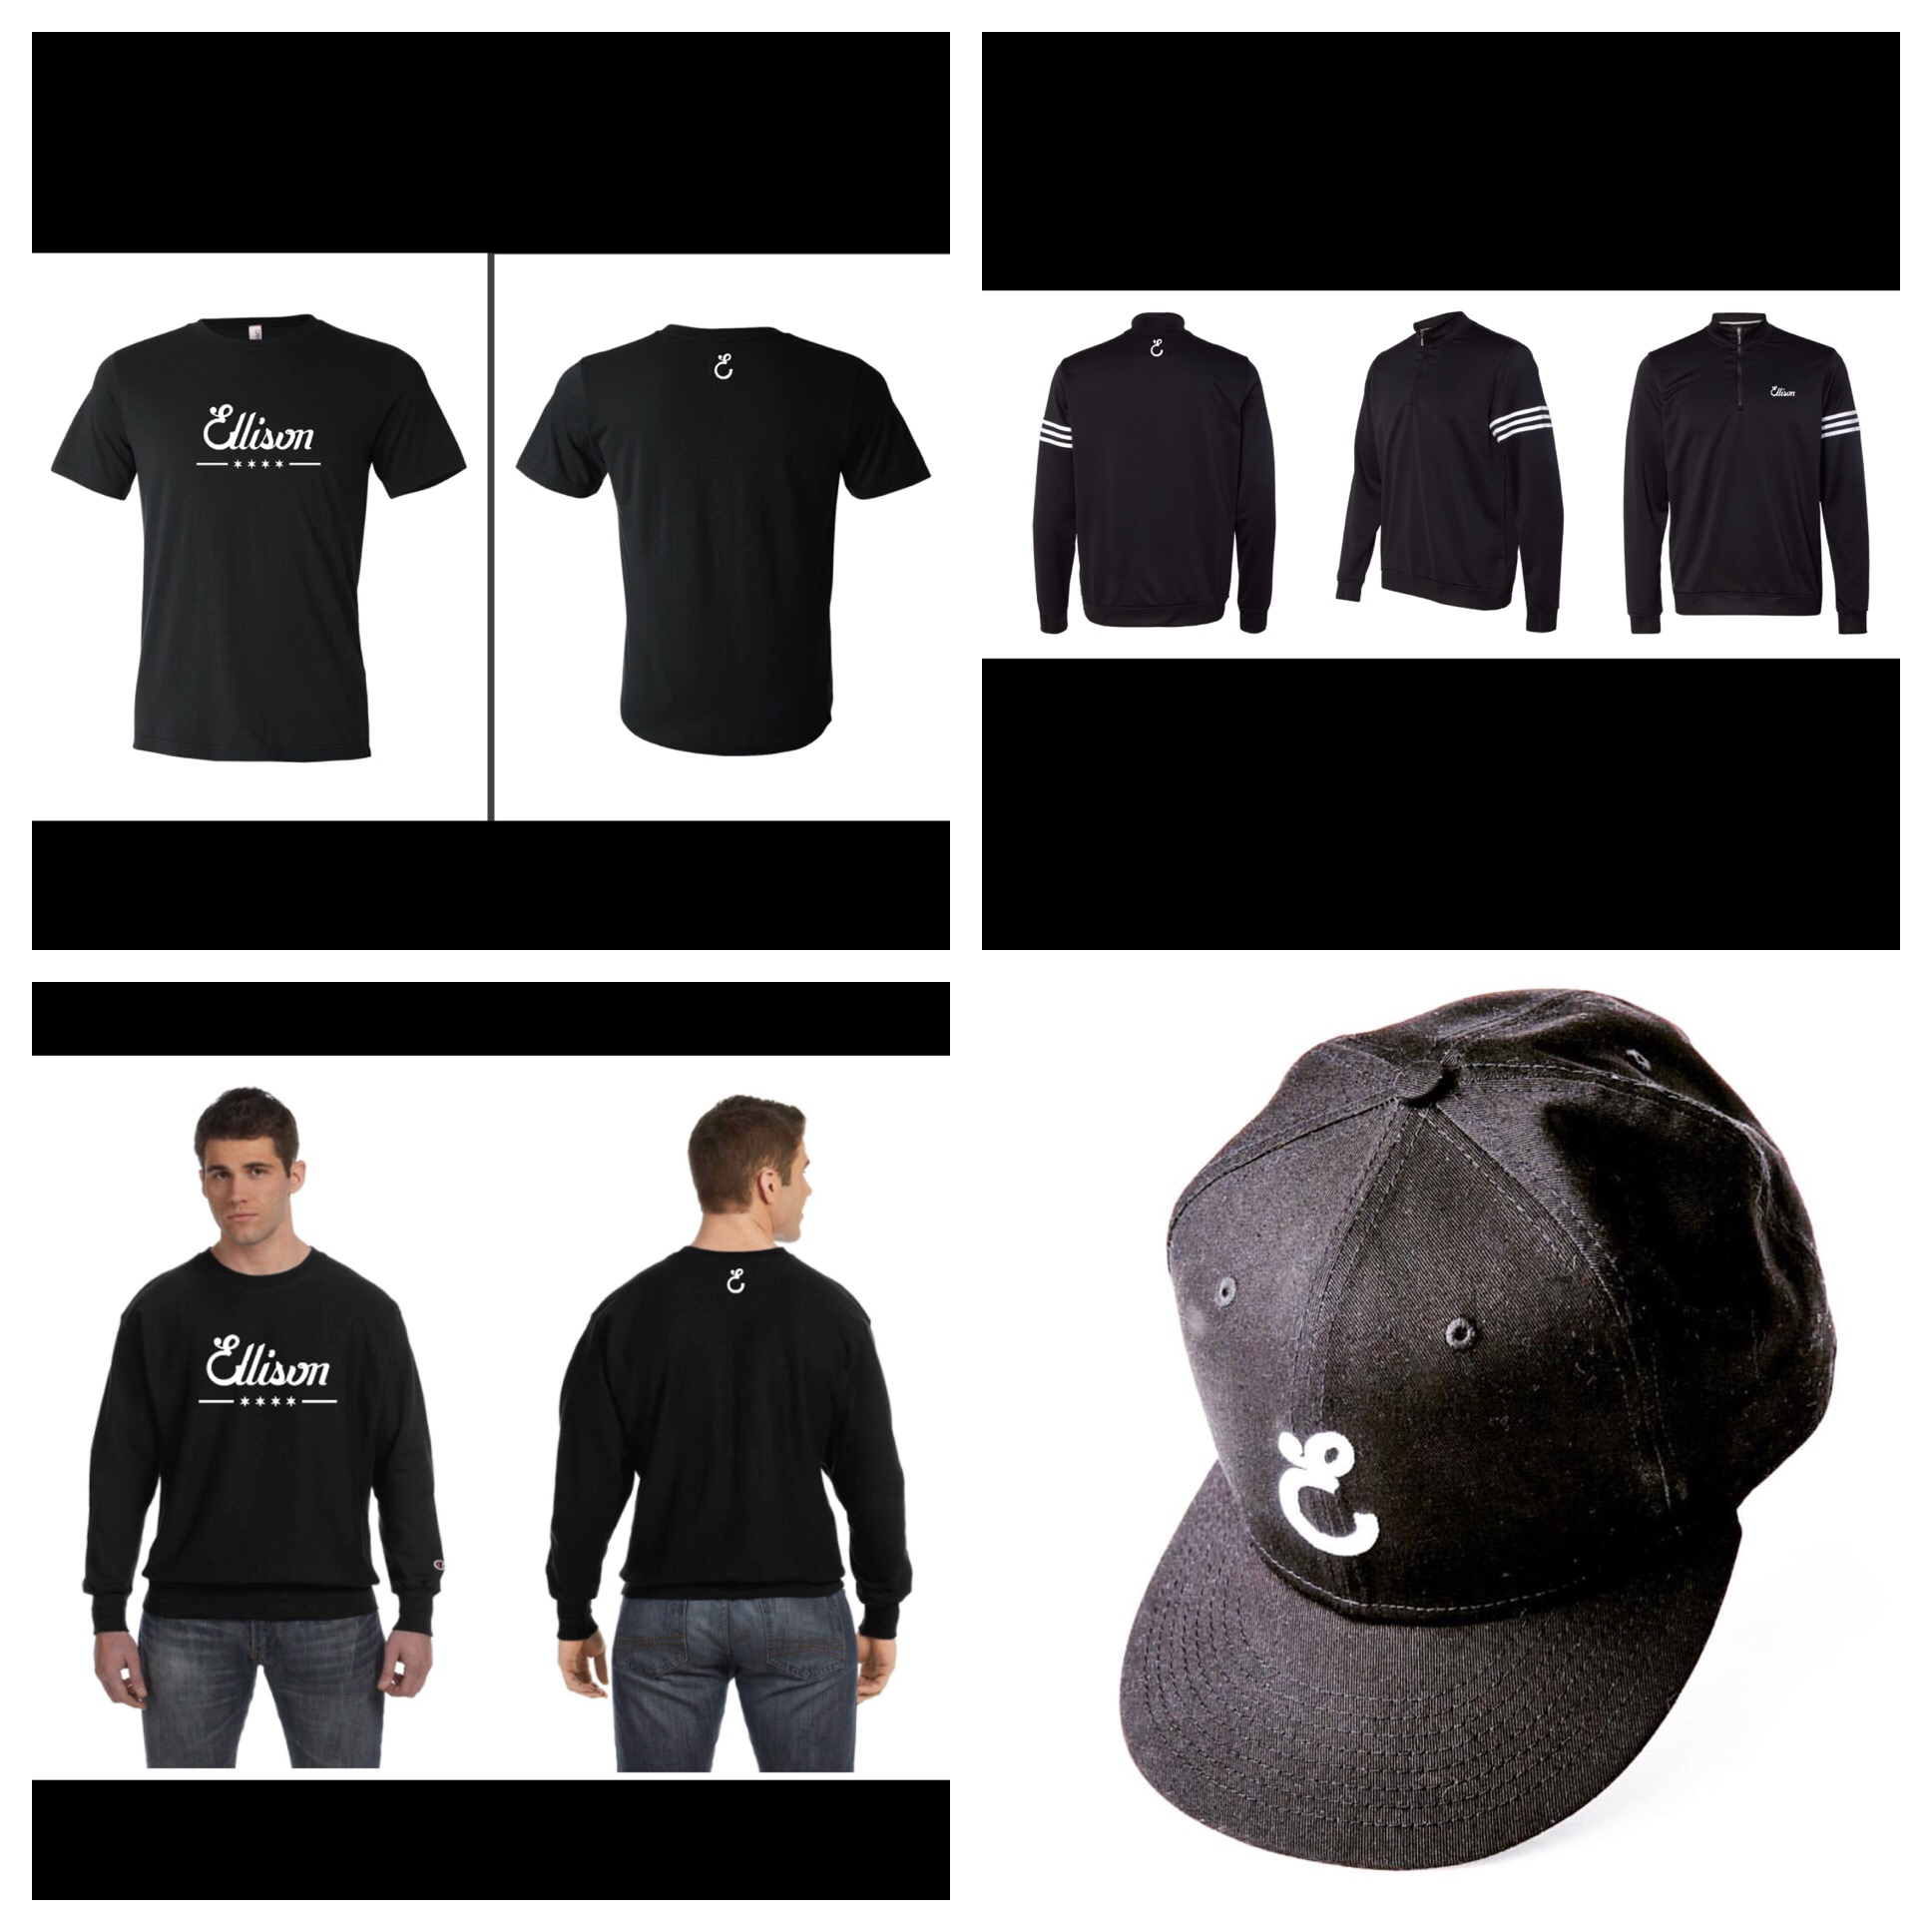 Ellison eyewear republic ellison eyewear swag package adidas jacket champion crew neck t shirt new era hat flat brim and cap this is available from xs xxl buycottarizona Gallery